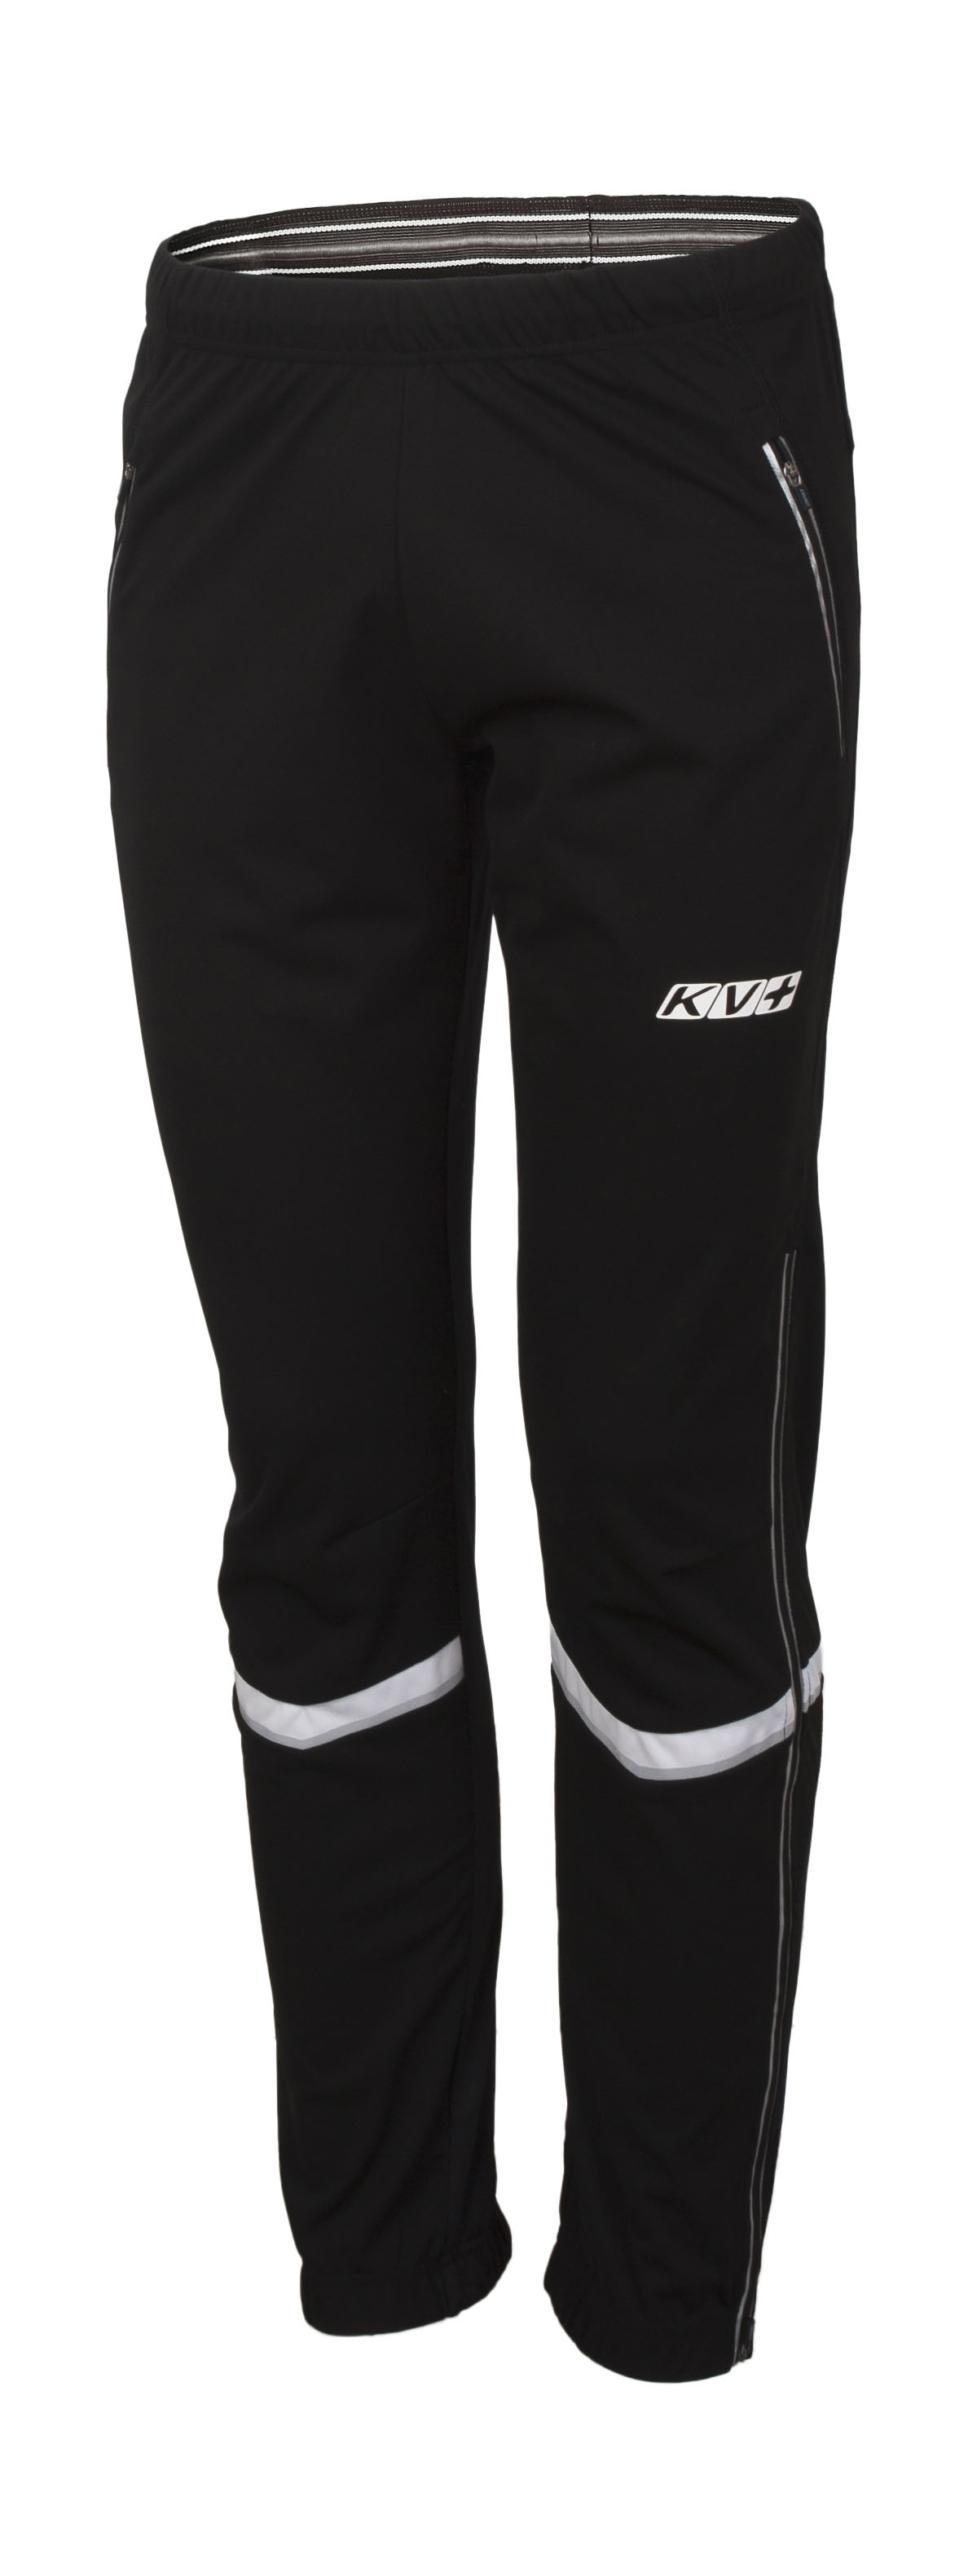 KV+ PREMIUM PANTS WIND PRO – black 7V146-1